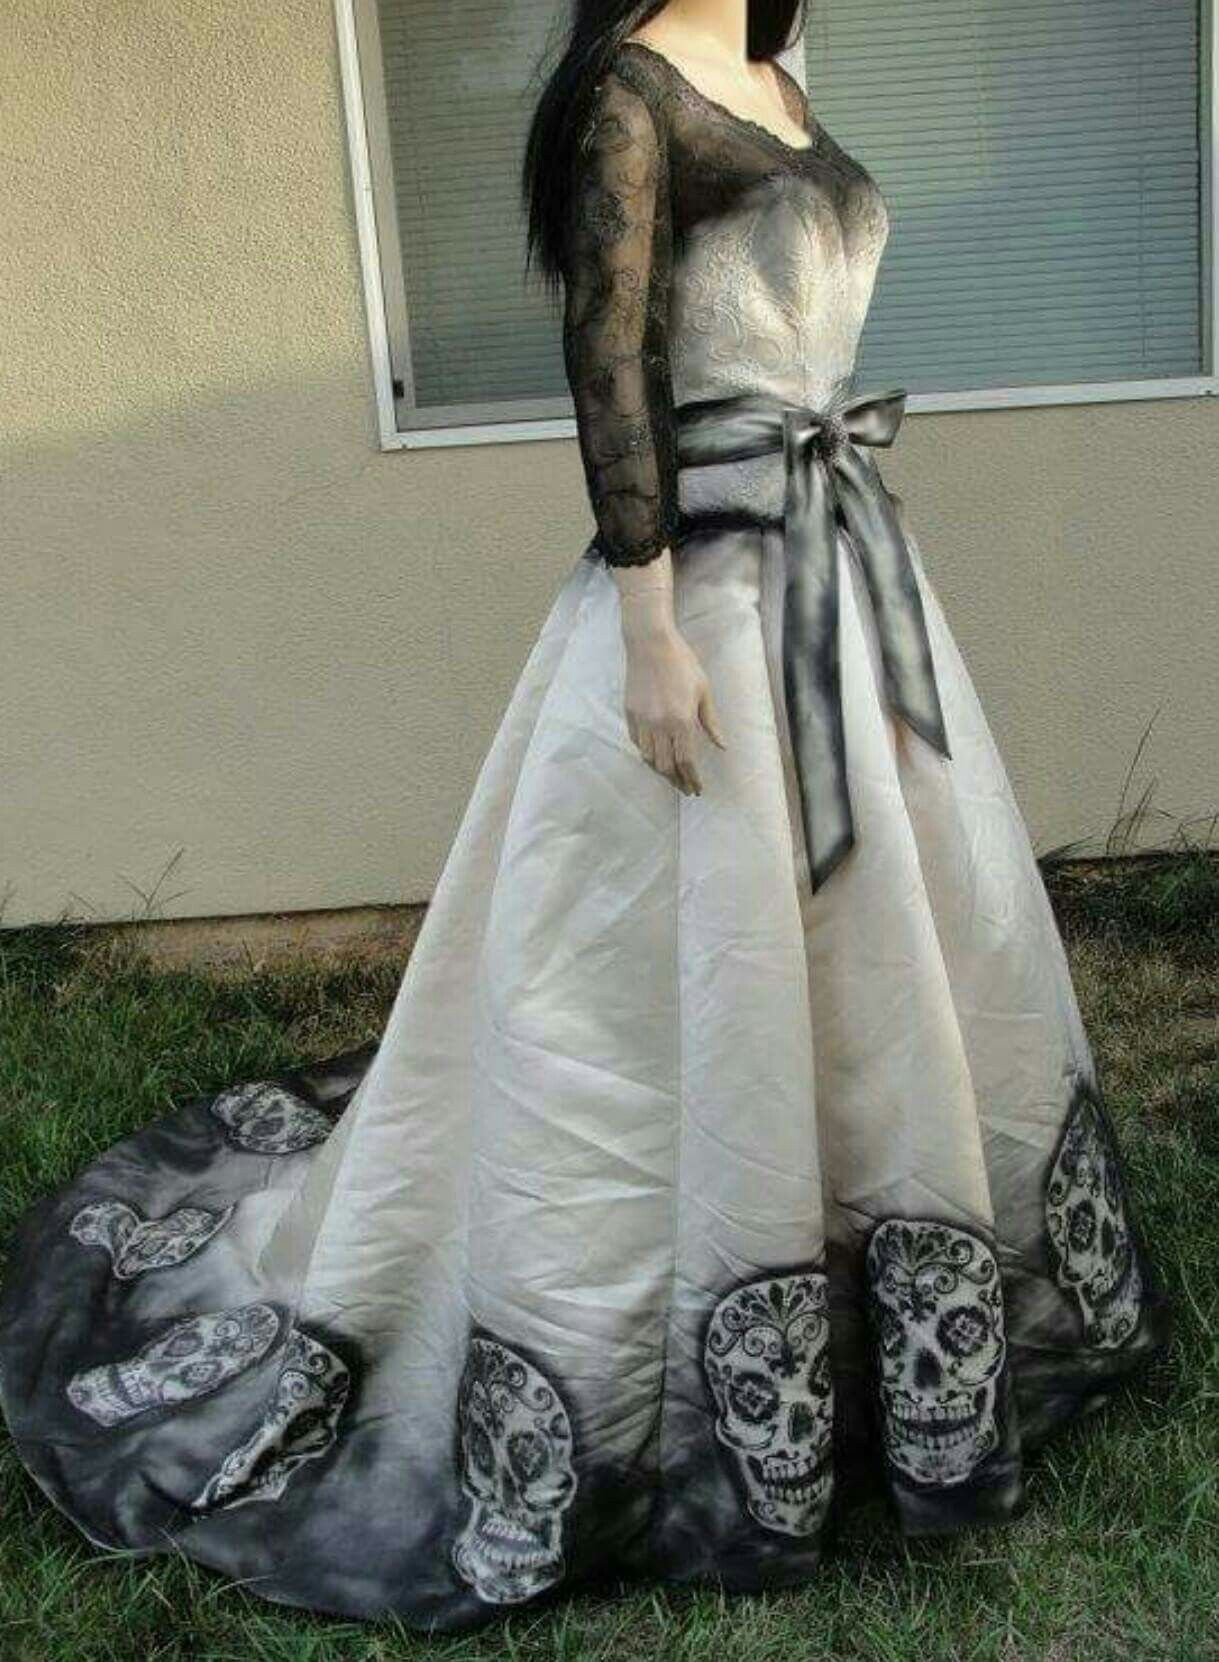 Pin By Shanah Backman On Gowns Skull Dress Sugar Skull Costume